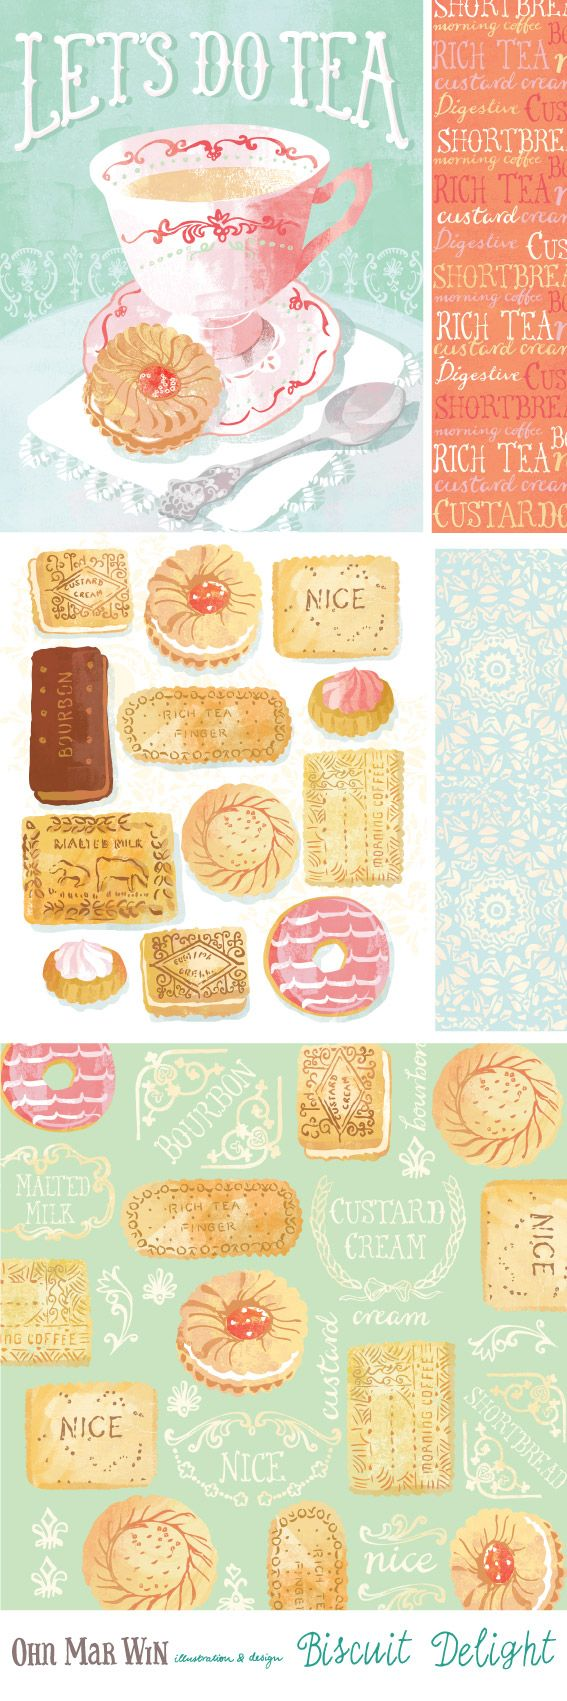 I have a ever growing selection of FOOD AND DRINK English tea British biscuits custard cream malted milk jammy dodger Ohn Mar Win Illustration